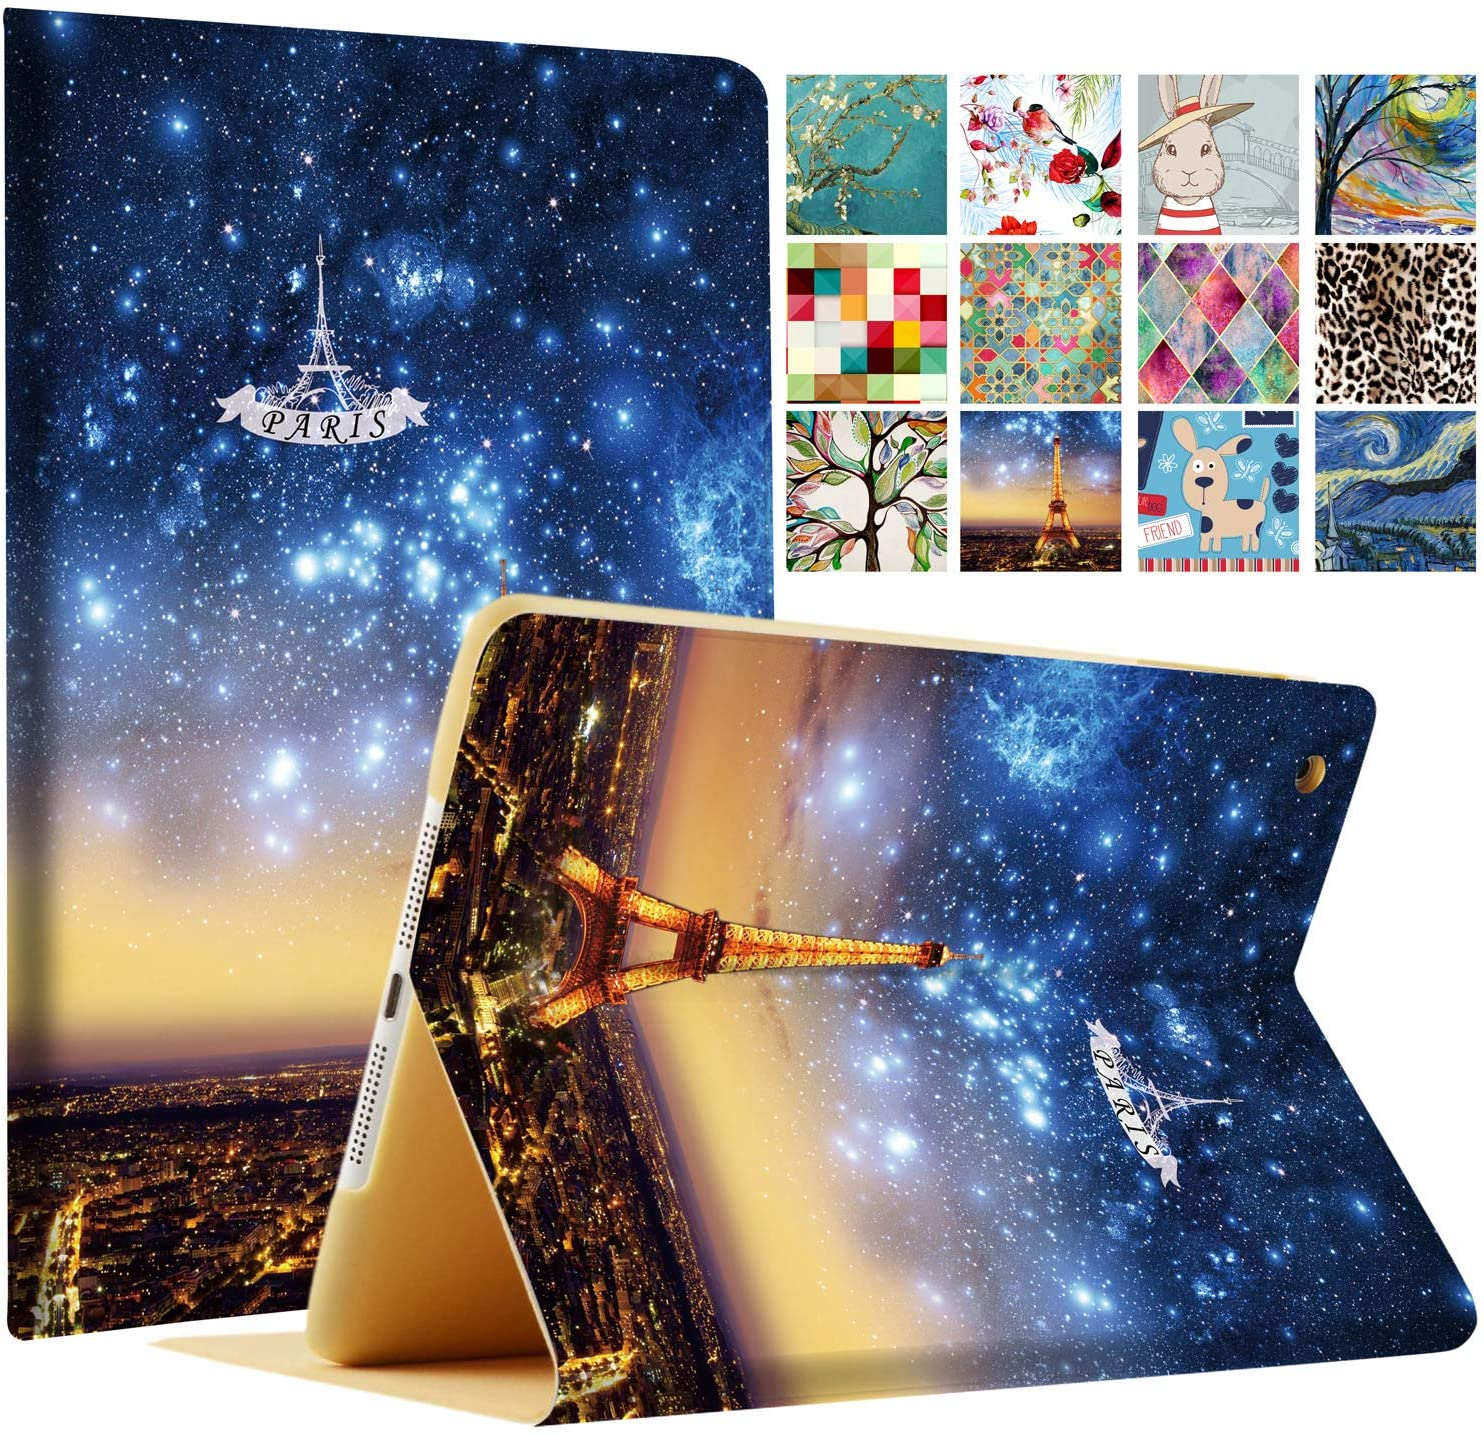 DuraSafe Cases For iPad Mini 3 2 1 Generation 7.9 Inch A1599 A1600 A1489 A1490 A1491 A1432 A1454 A1455 Printed Folio Magnetic Smart Protective Sleek & Classic Design Cover - Paris Night